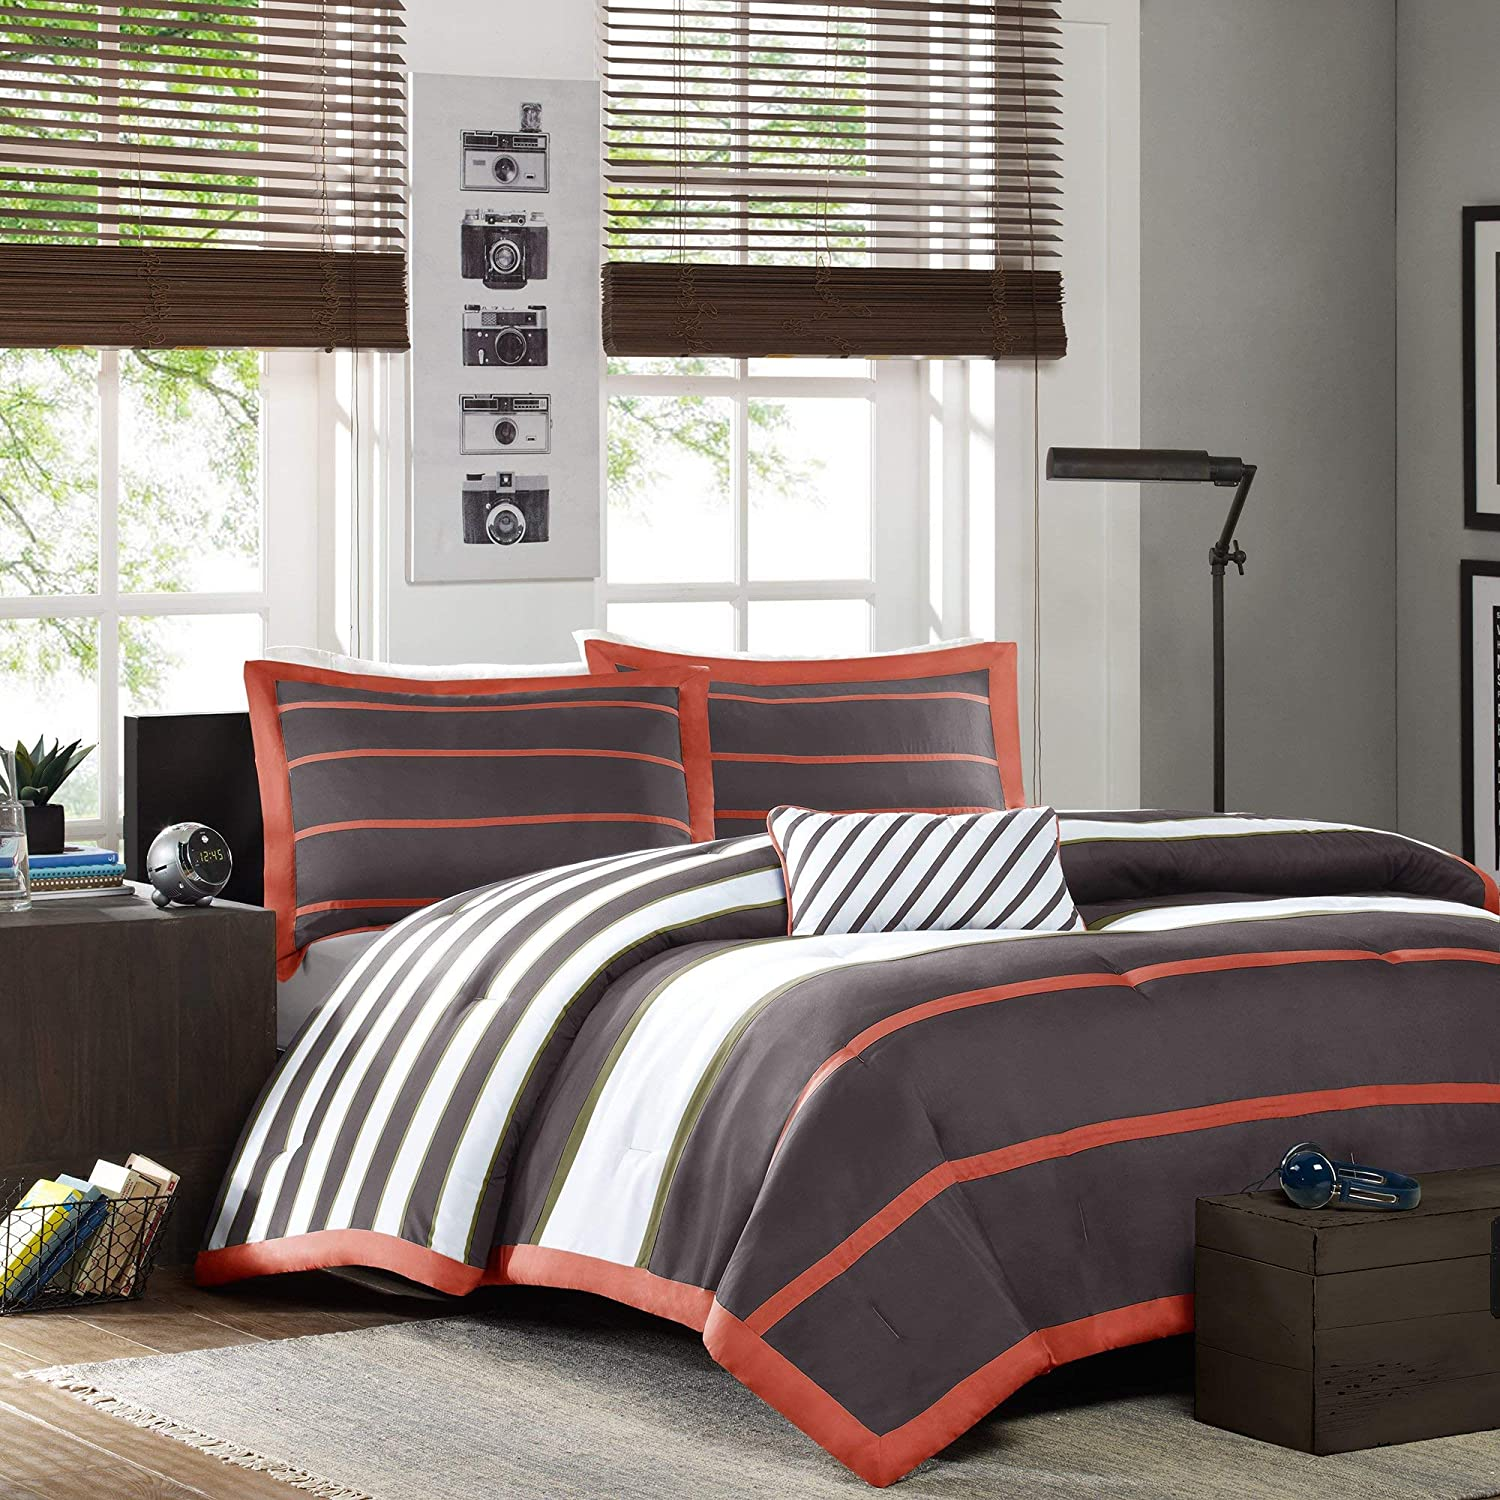 Mi-Zone Ashton Full/Queen Kids Bedding Sets for Boys - Orange, Grey, Stripes – 4 Pieces Boy Comforter Set – Ultra Soft Microfiber Kid Childrens Bedroom Comforters